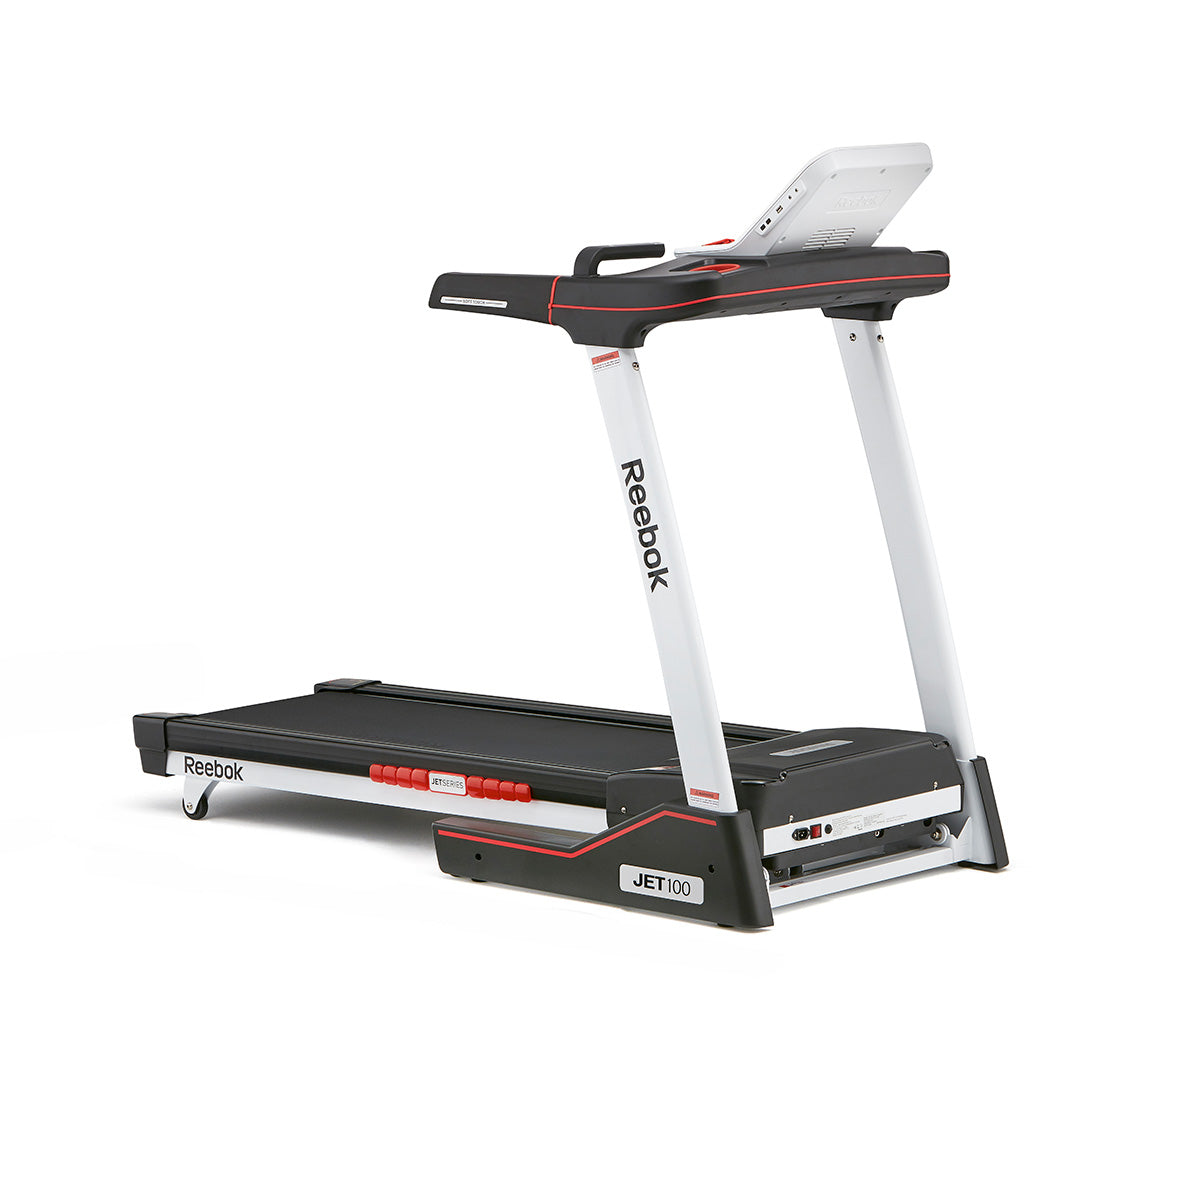 Reebok Jet 100 Series Treadmill Home Gym Equipment Machine